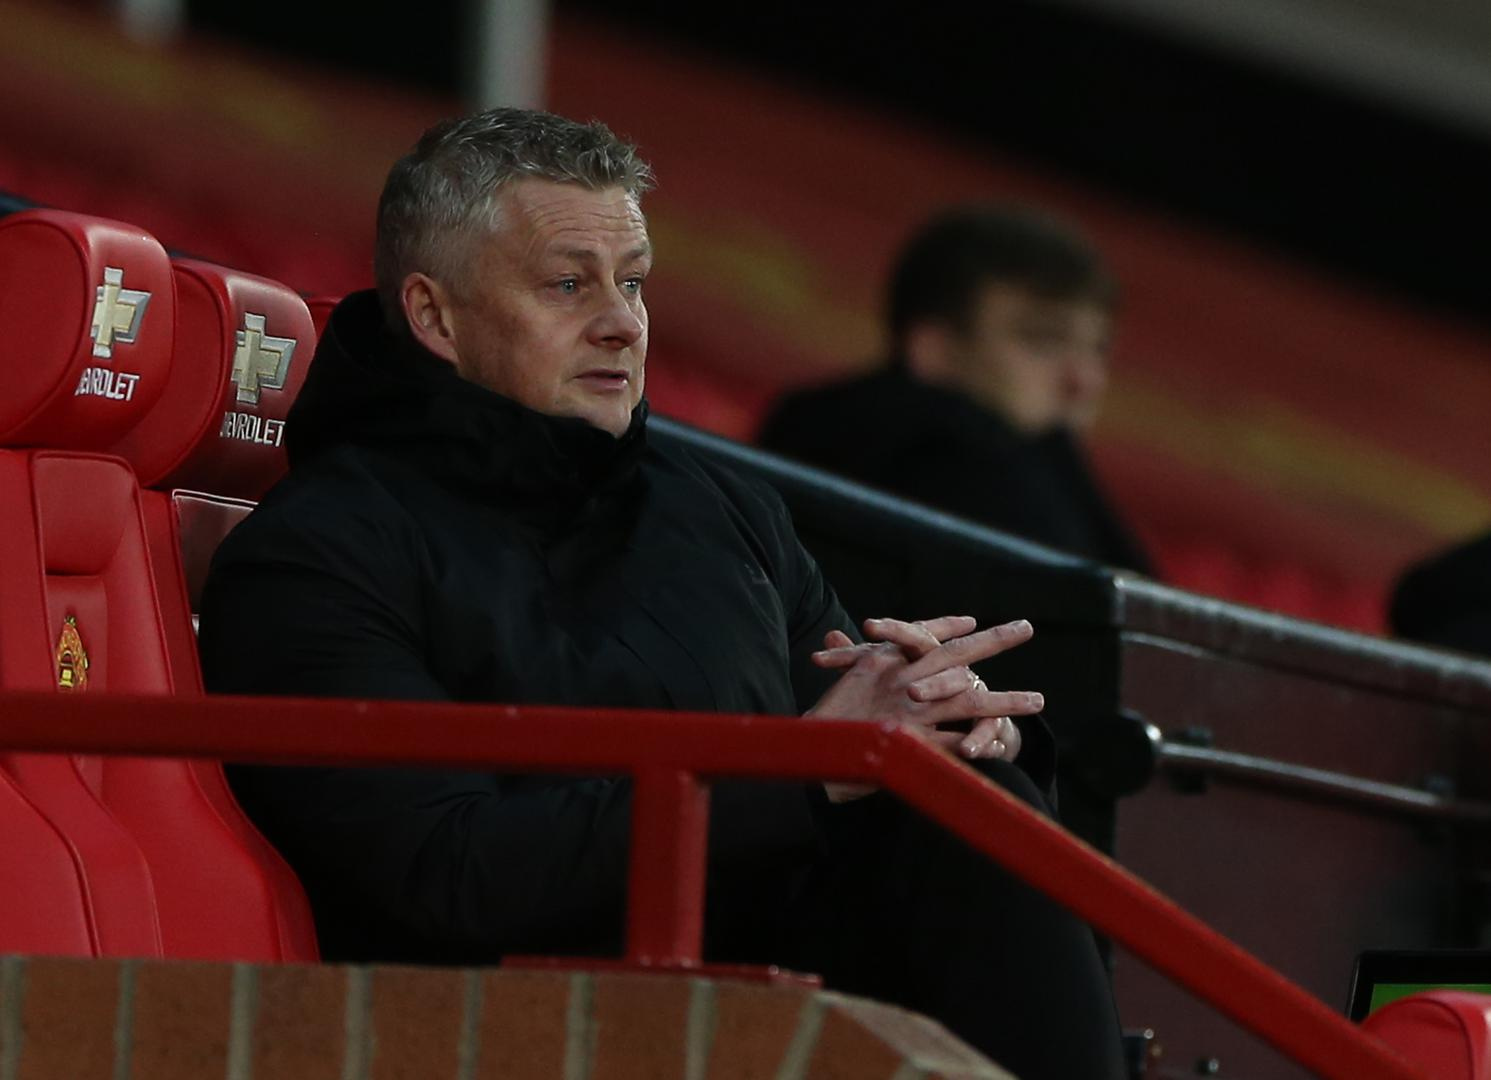 Ole Gunnar Solskjaer in the dugout at Old Trafford